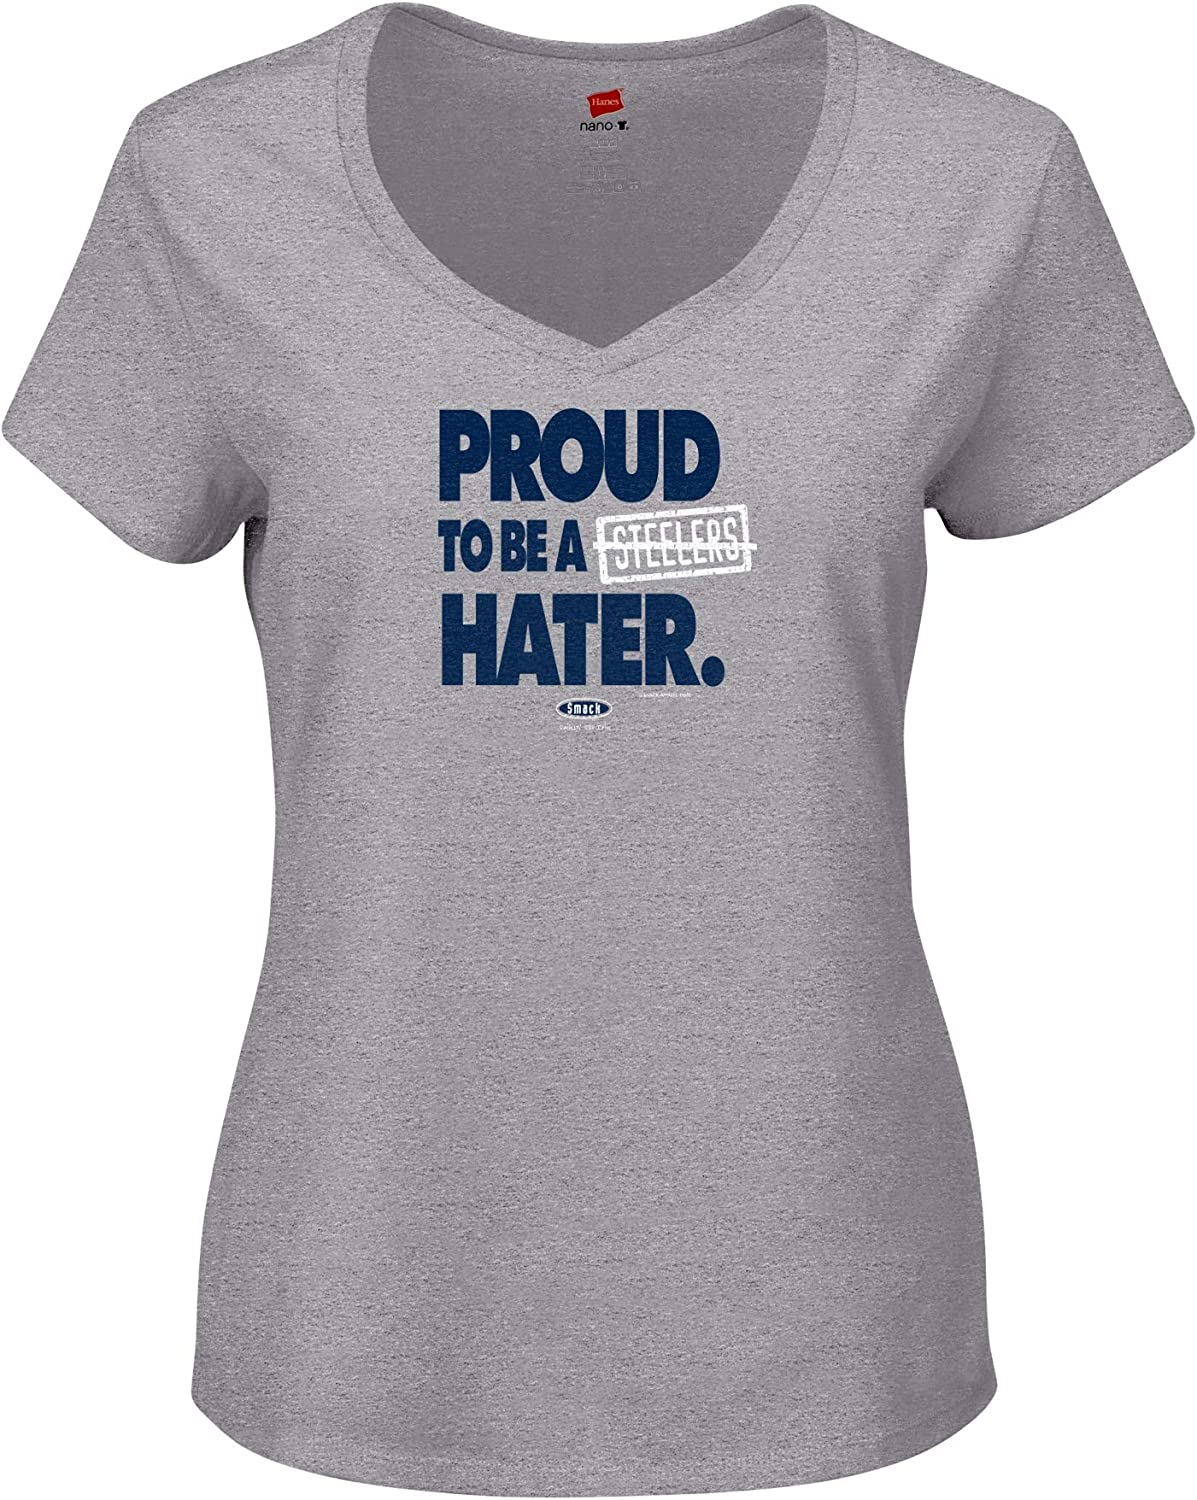 Proud to Be A Steelers Hater Gray Ladies T-Shirt Xs-2X Smack Apparel New England Football Fans